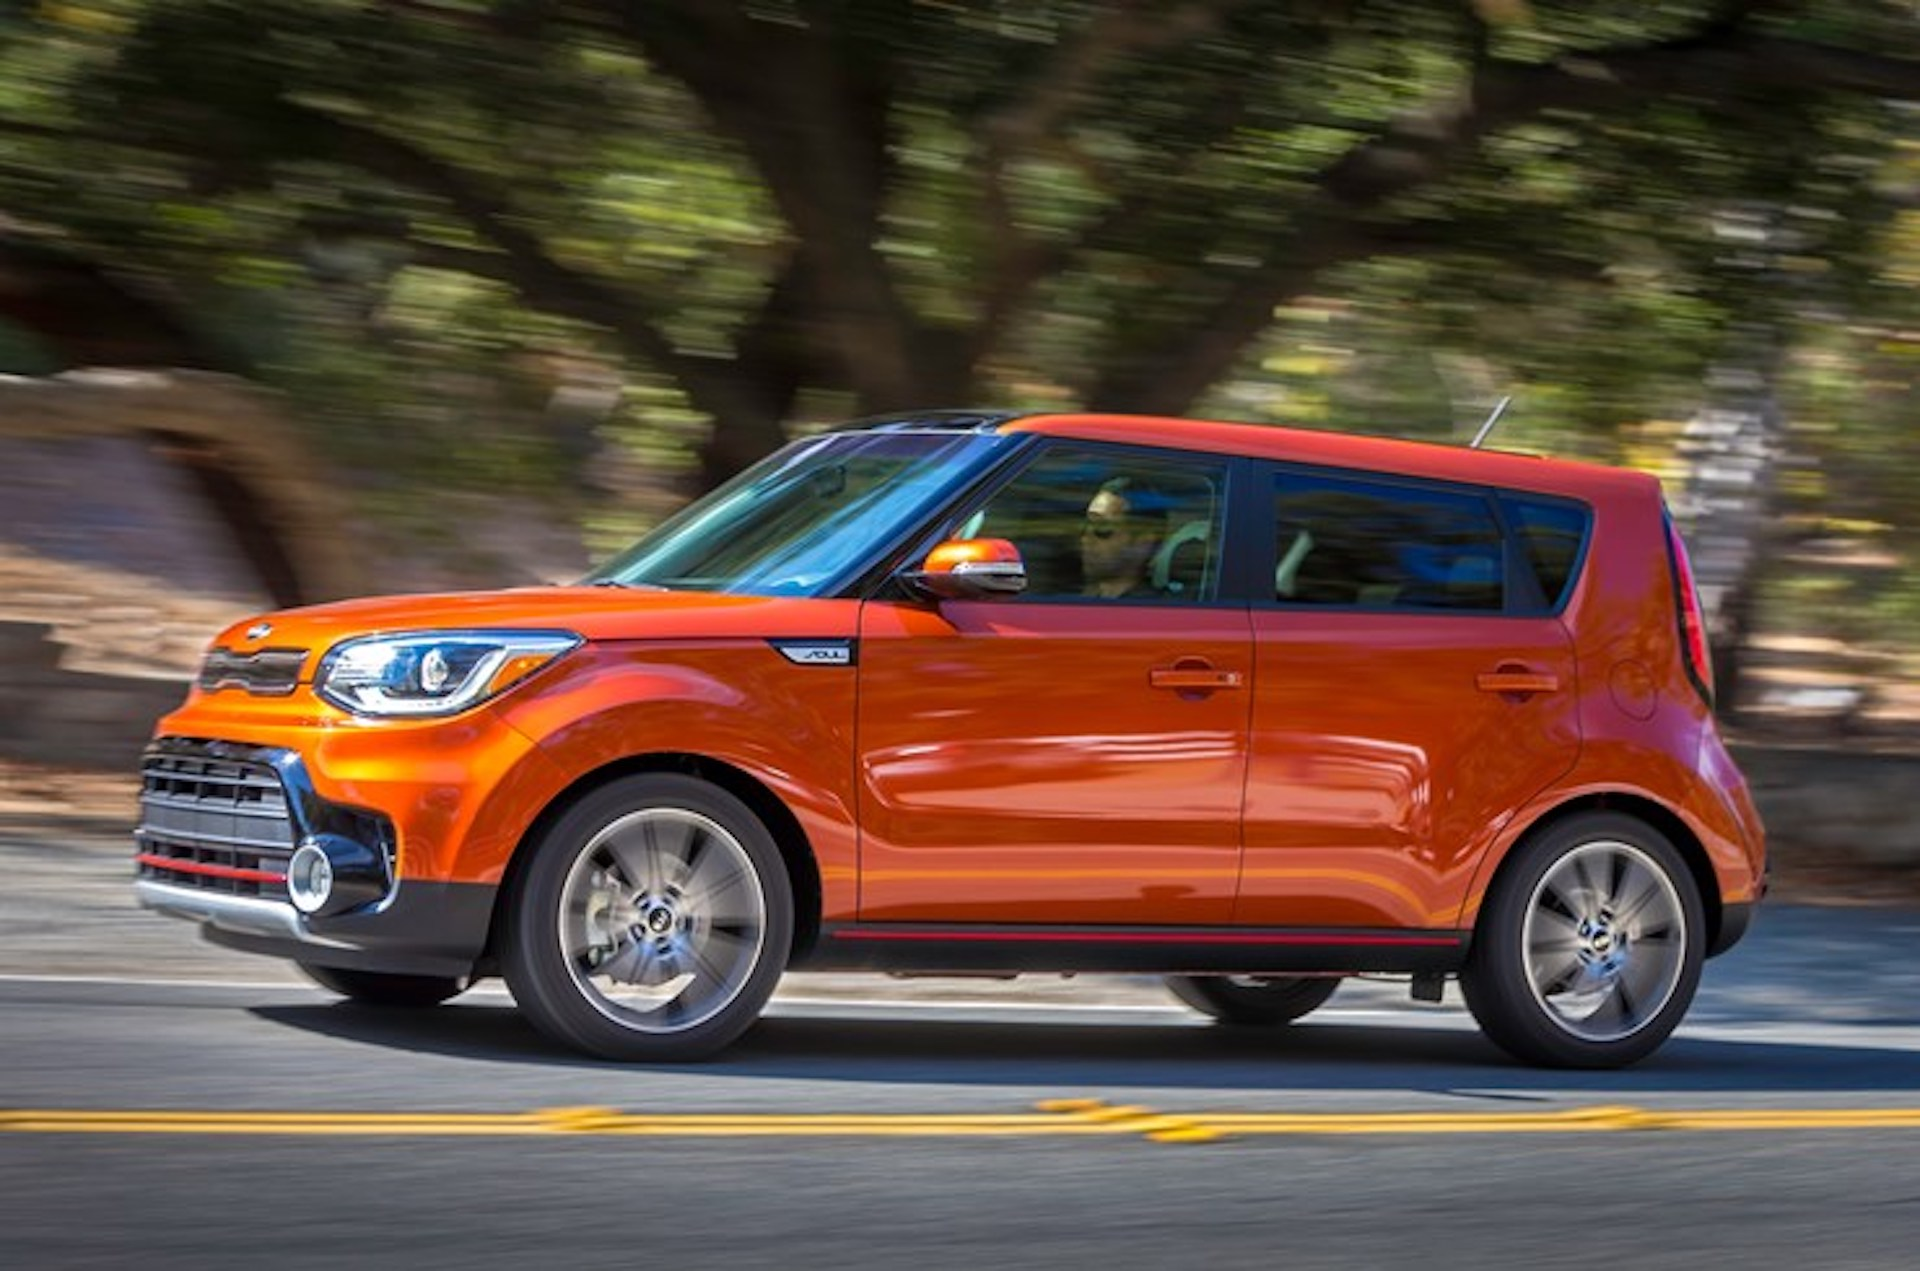 2019 Kia Soul Review Ratings Specs Prices And Photos Jungle Fender Flares Best 4x4